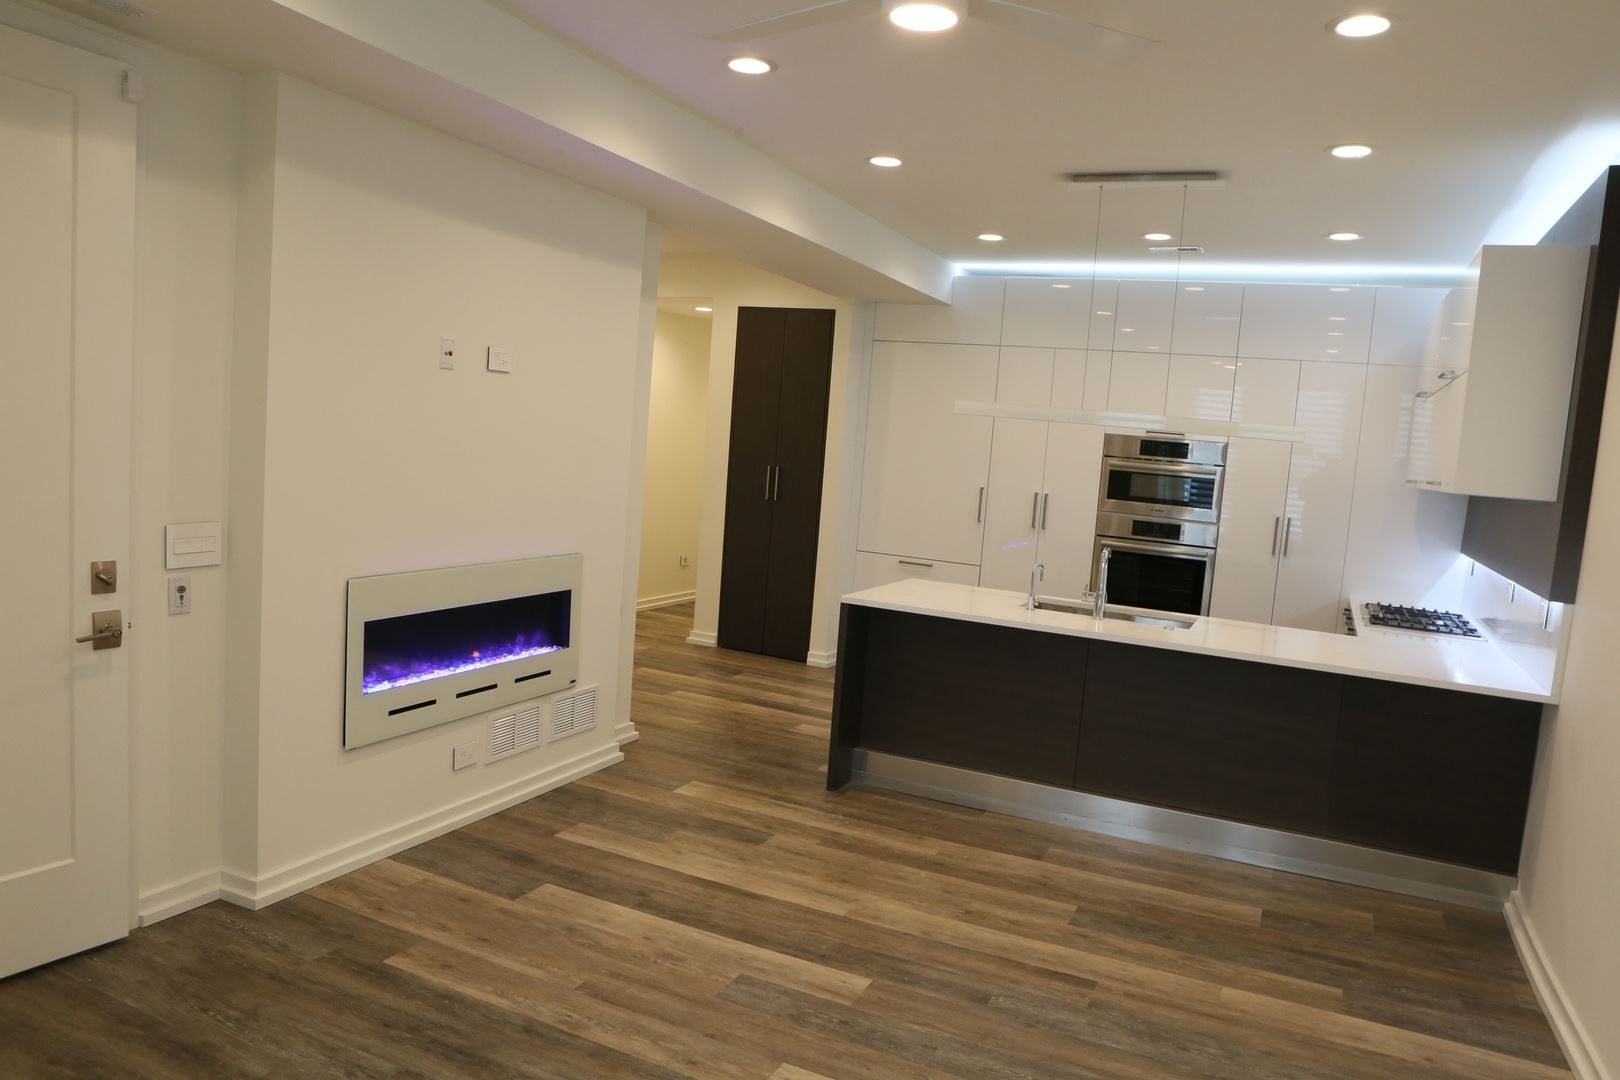 Photo for 1420 West Fulton Street, Chicago, IL 60607 (MLS # 10637791)